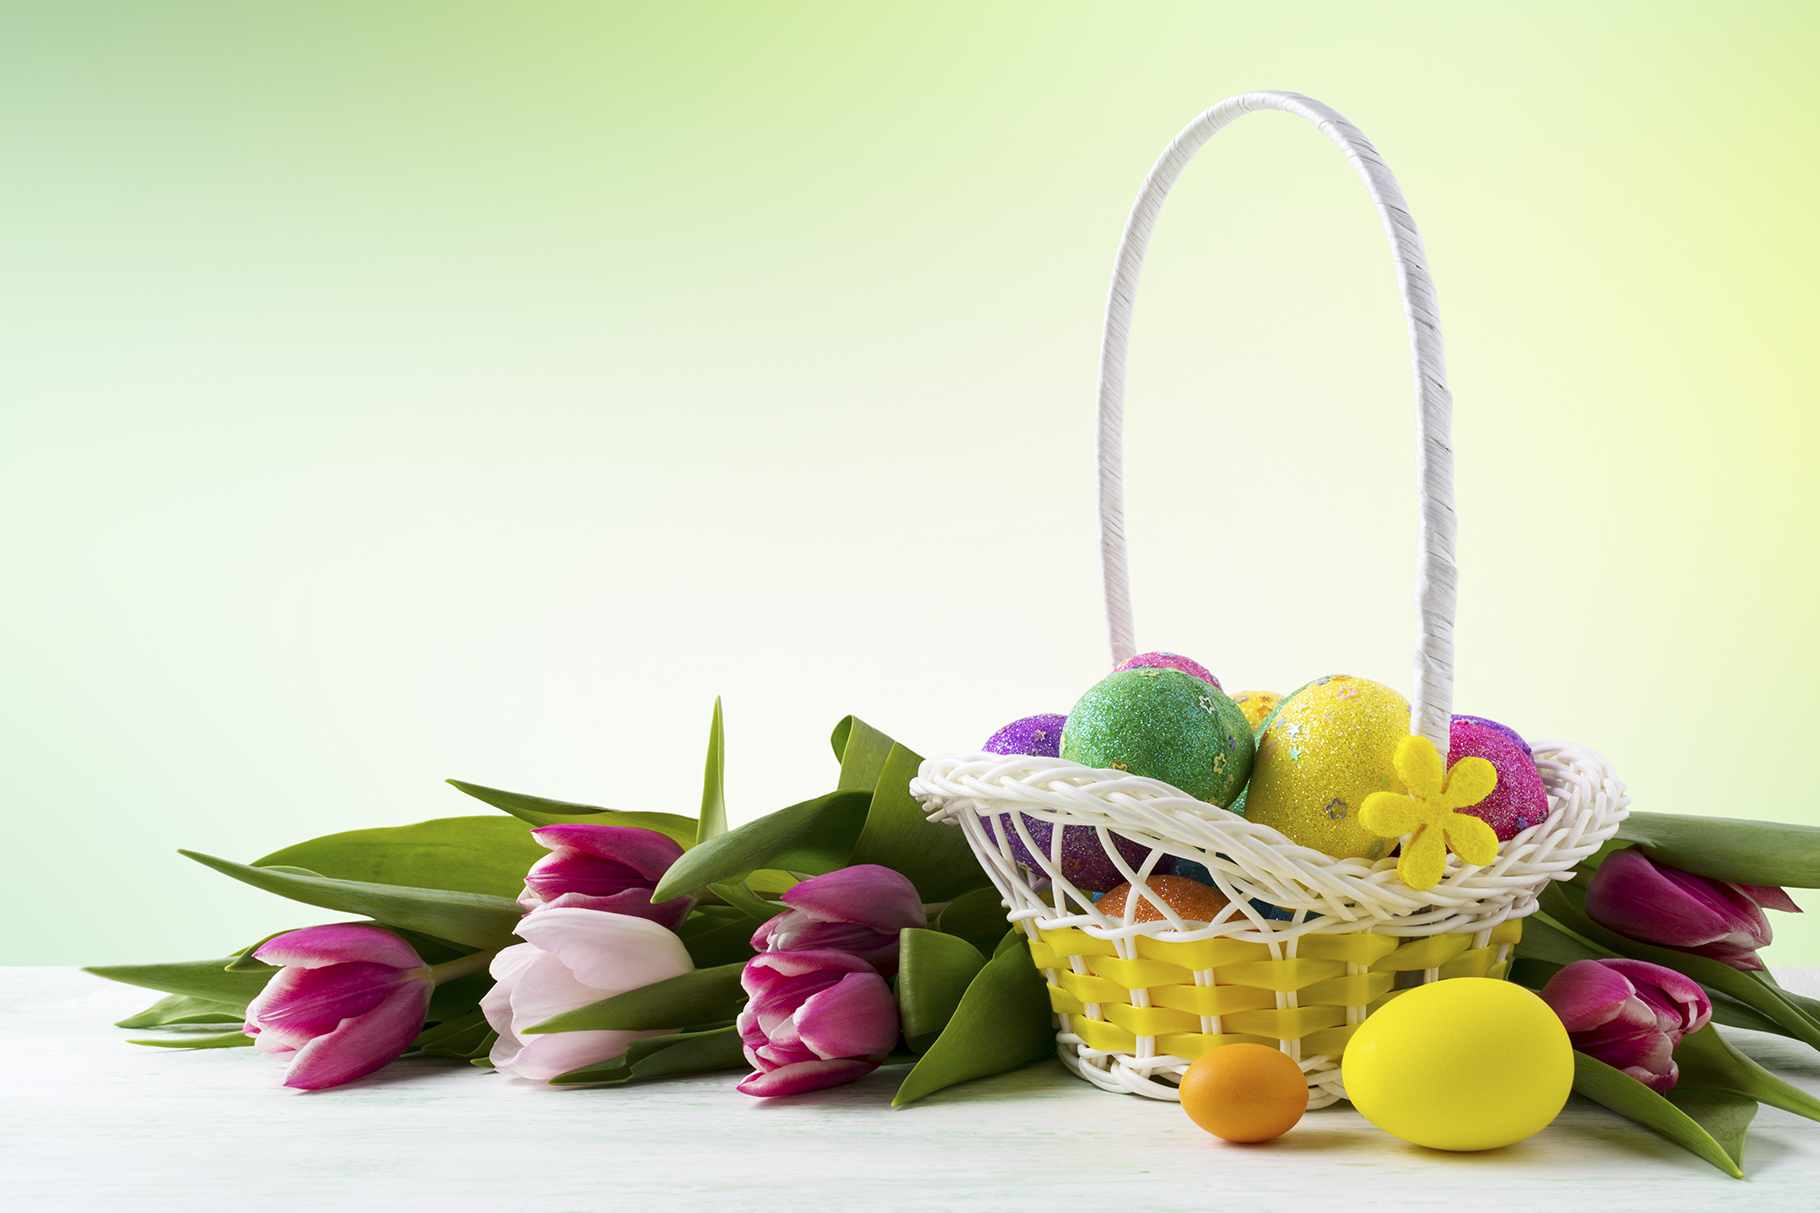 Happy Easter Elegant Background with Painted Eggs in Yellow Basket. Graphic By TasiPas